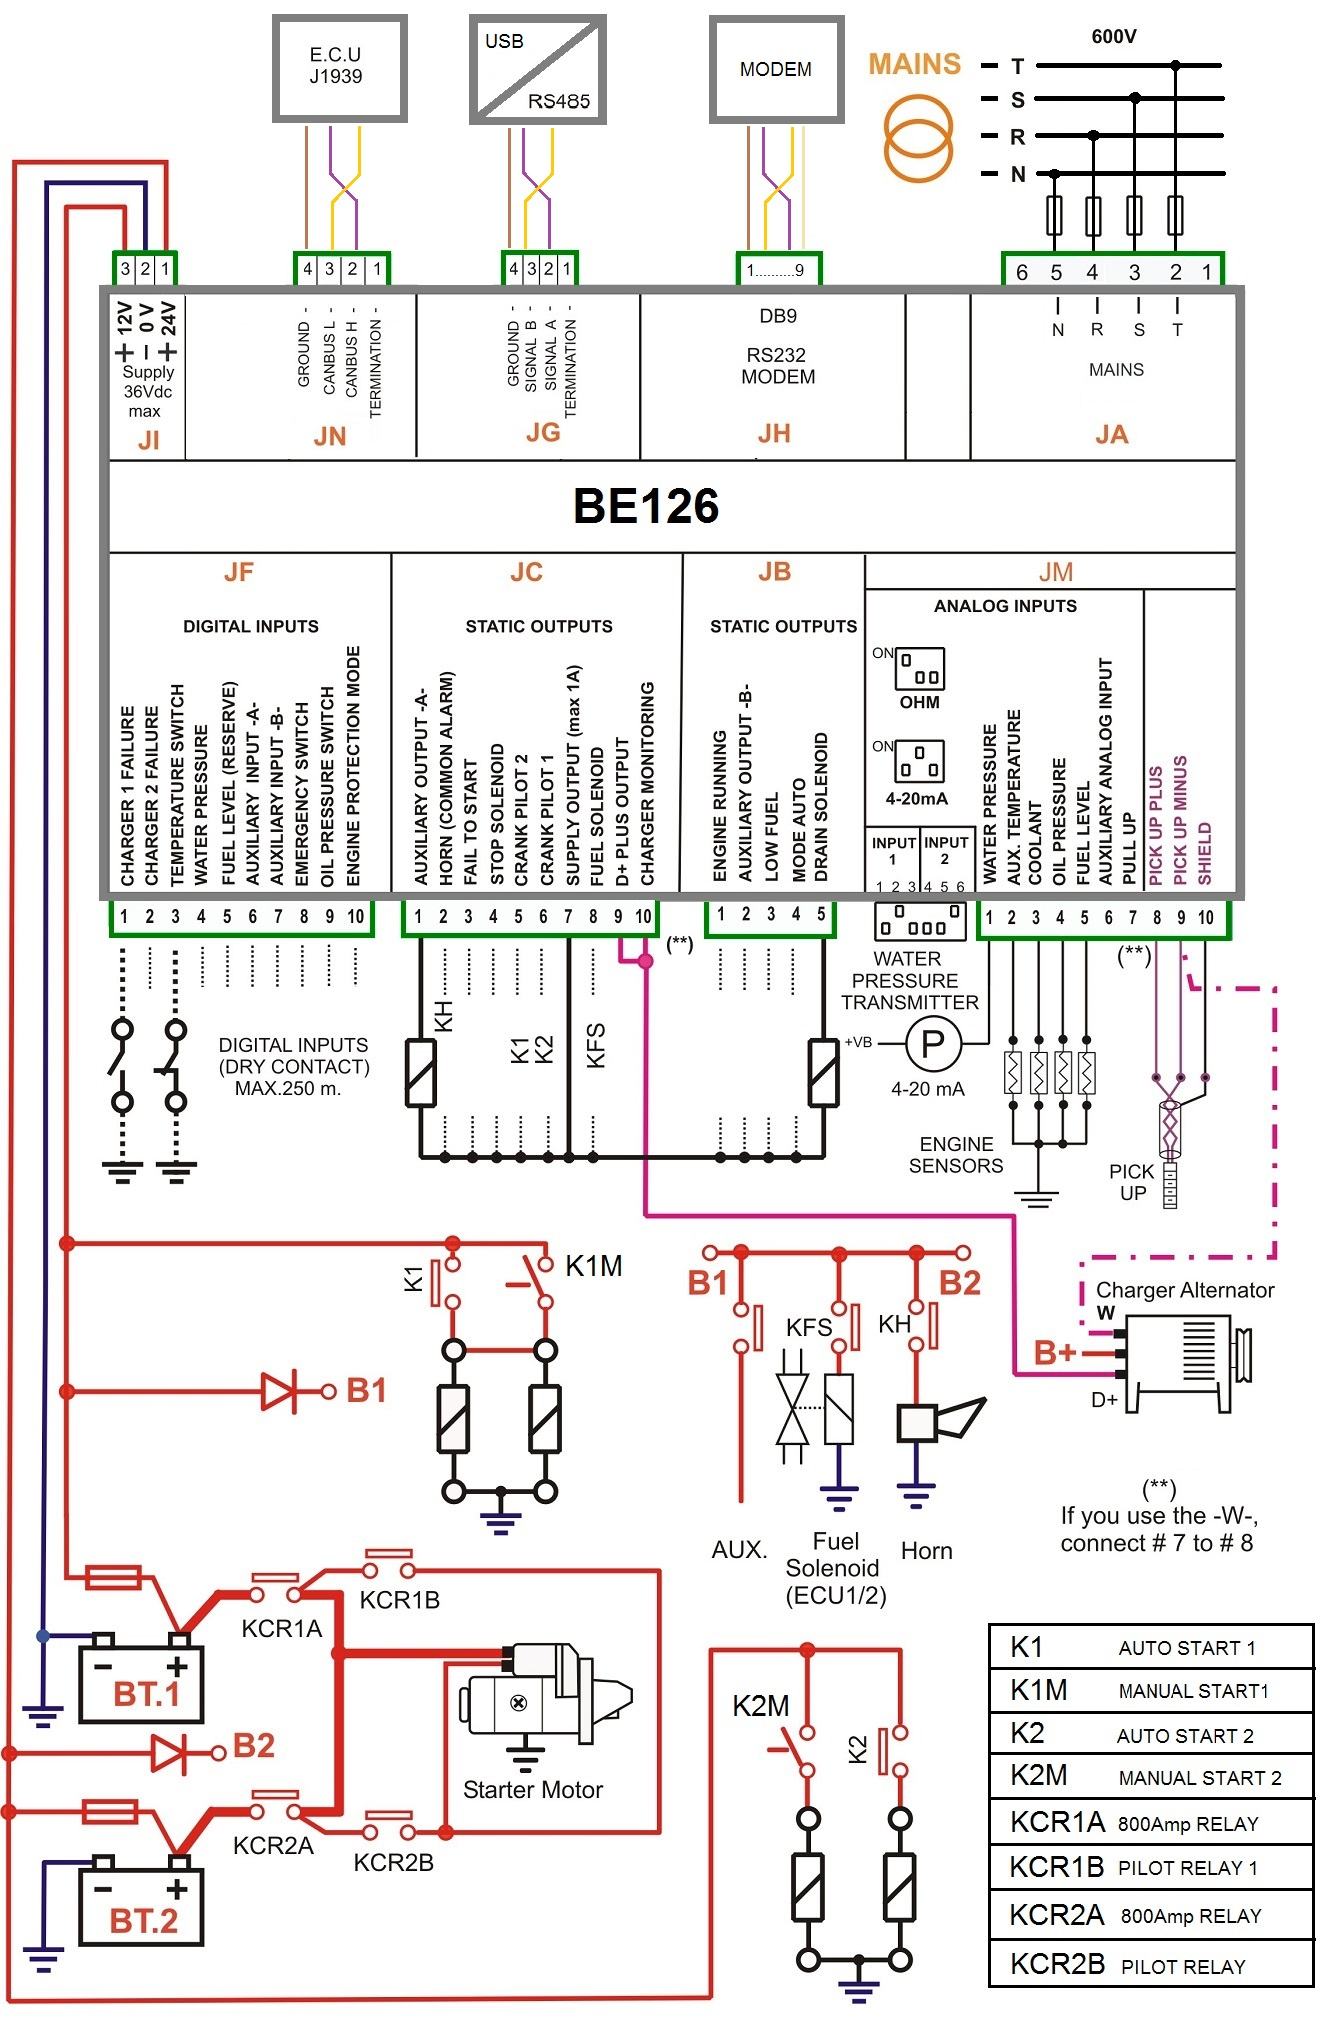 fire pump controller wiring diagram !!